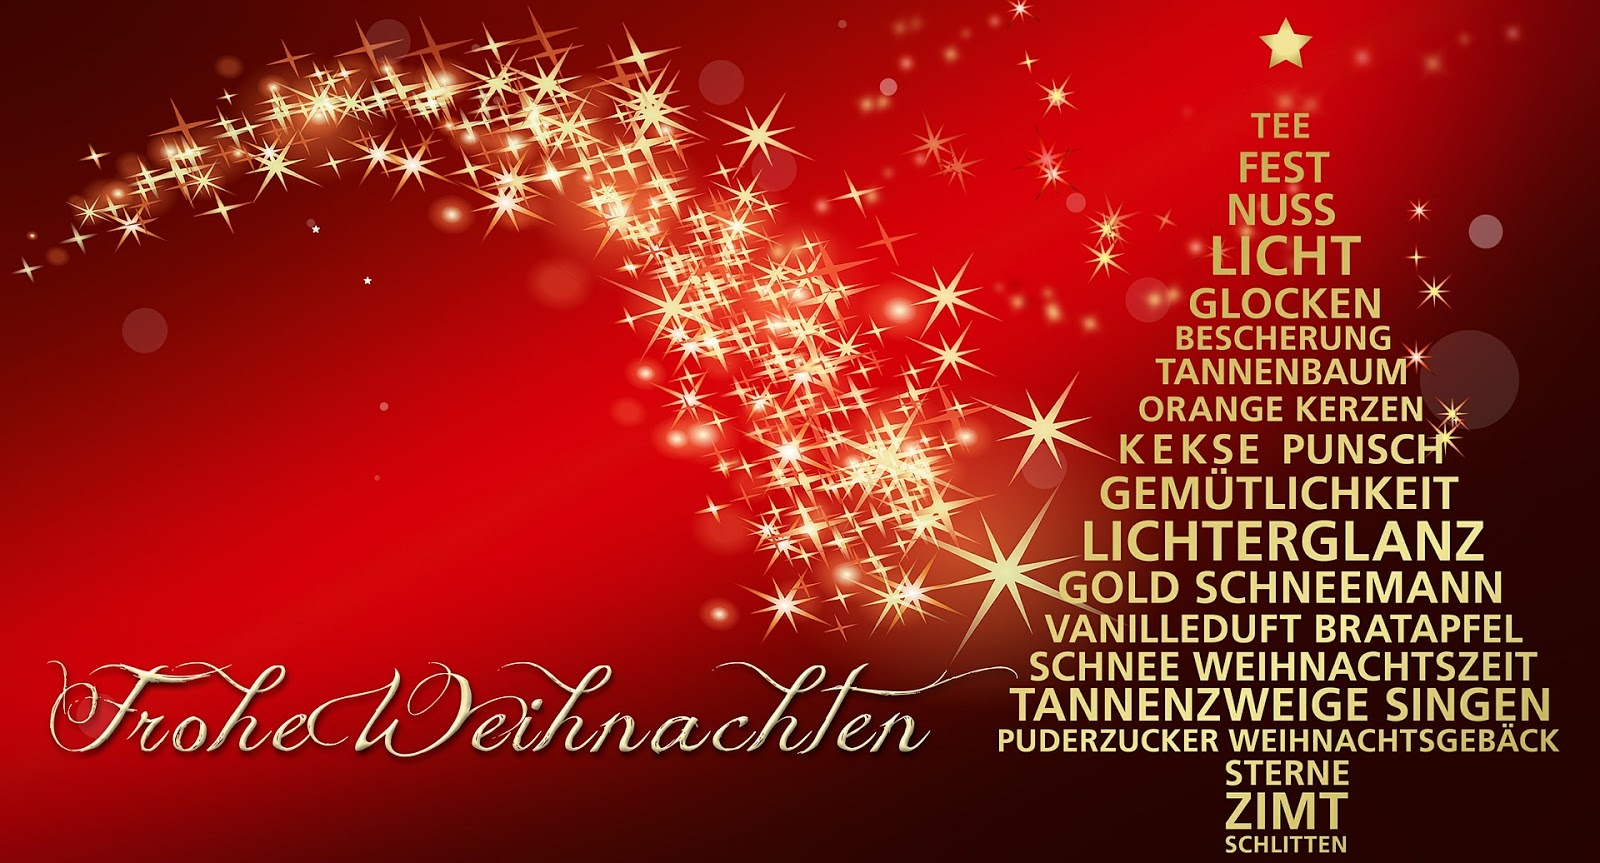 find out about some german christmas traditions present your findings in a powerpoint or poster